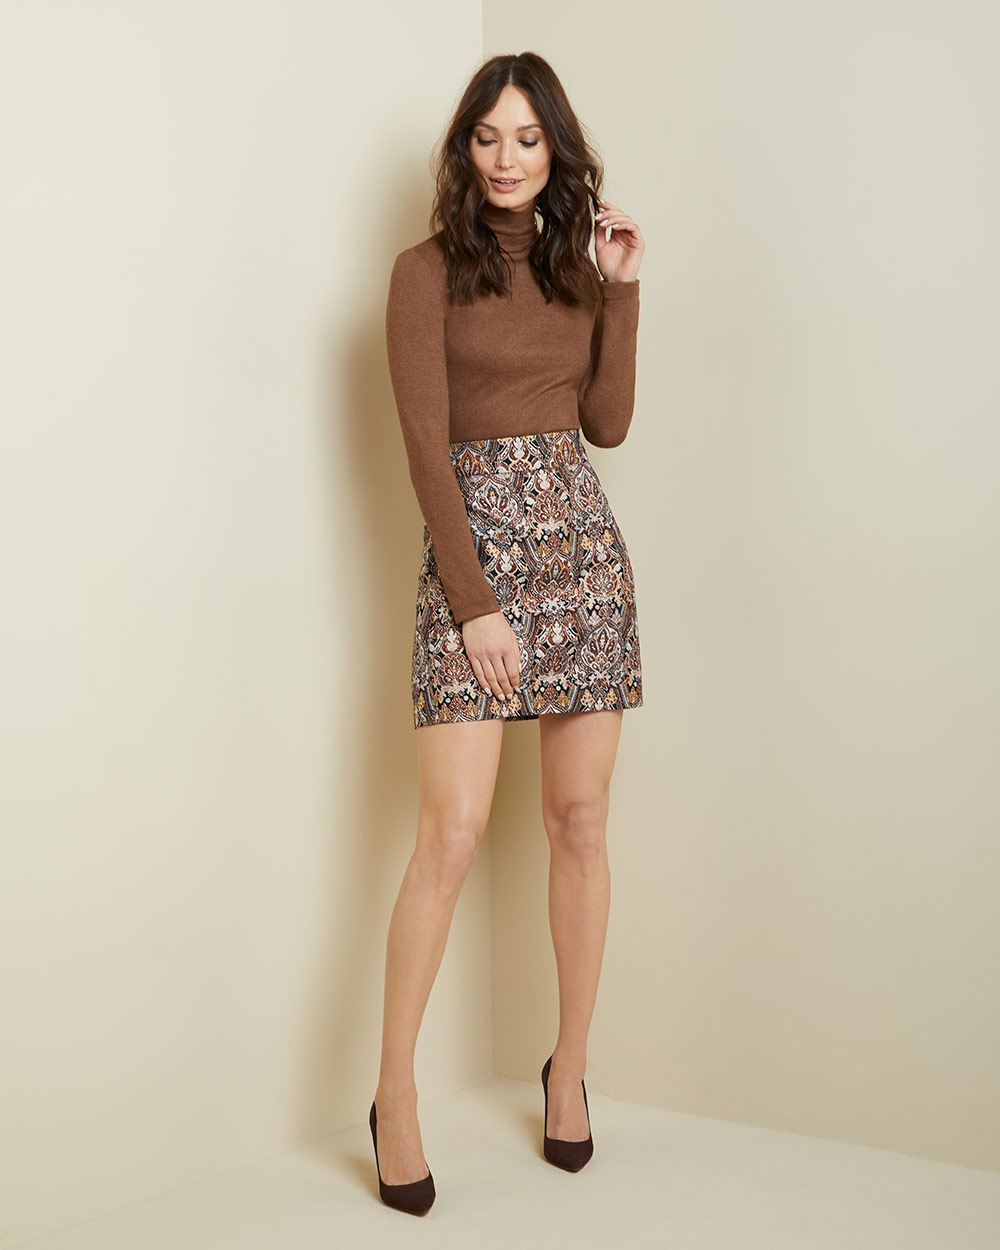 Metallic jacquard High-waist short skirt